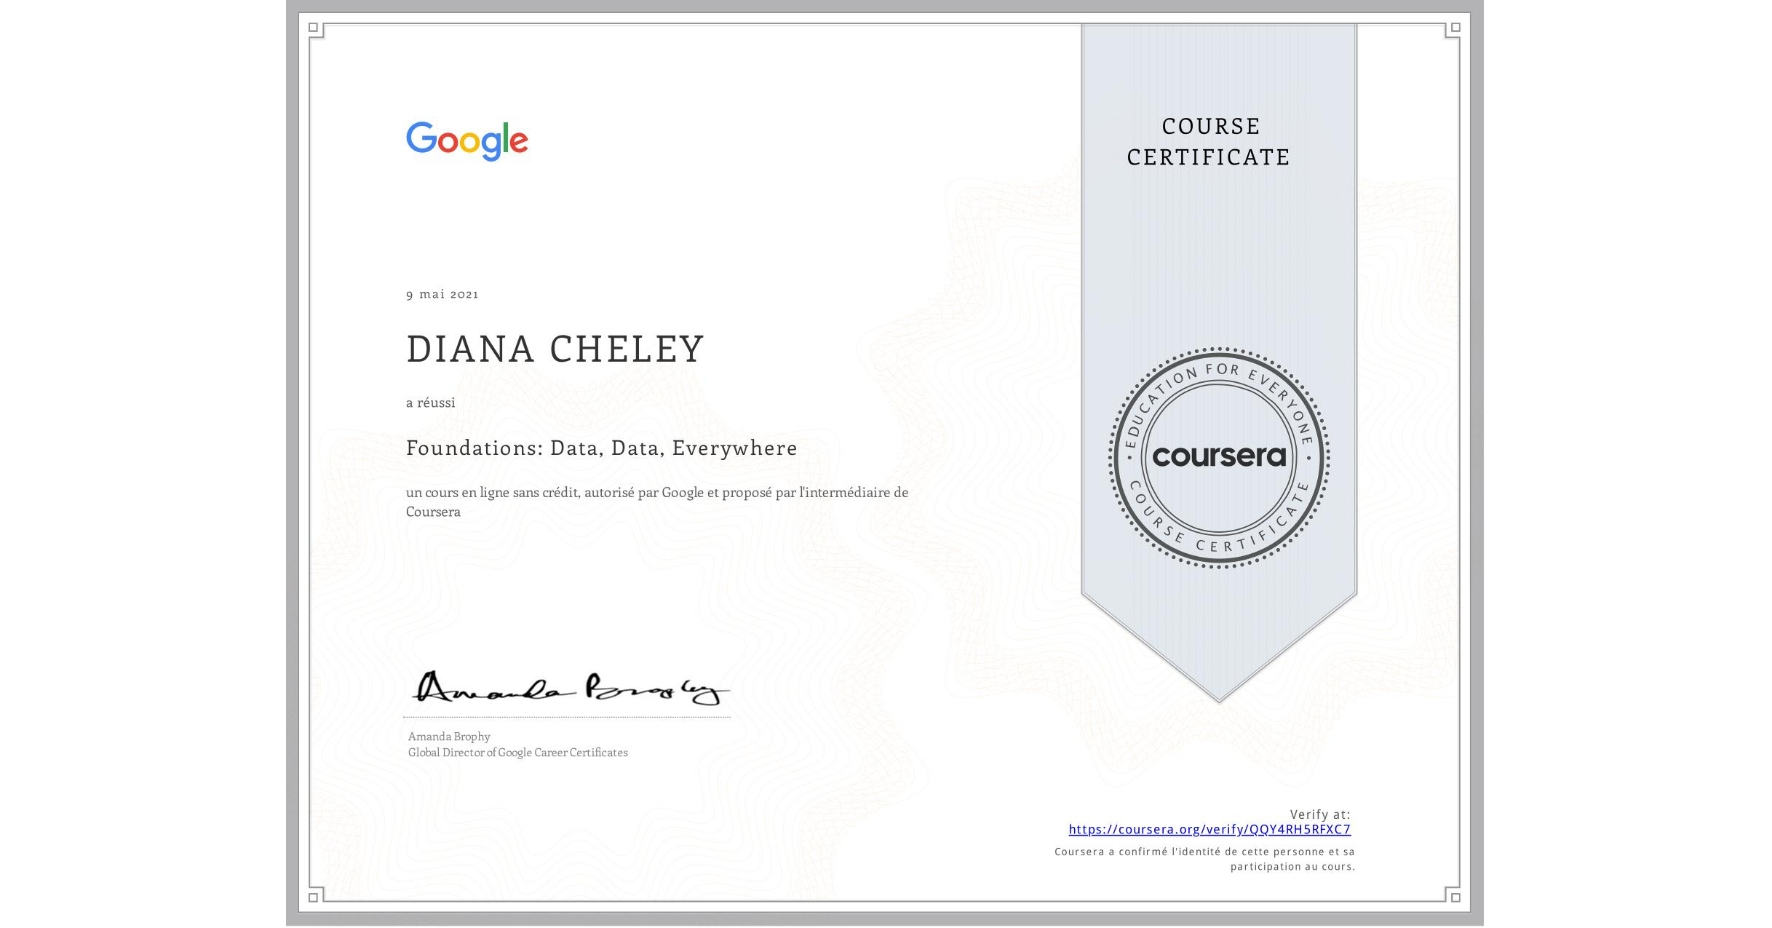 View certificate for Dziyana Chalei, Foundations: Data, Data, Everywhere, an online non-credit course authorized by Google and offered through Coursera